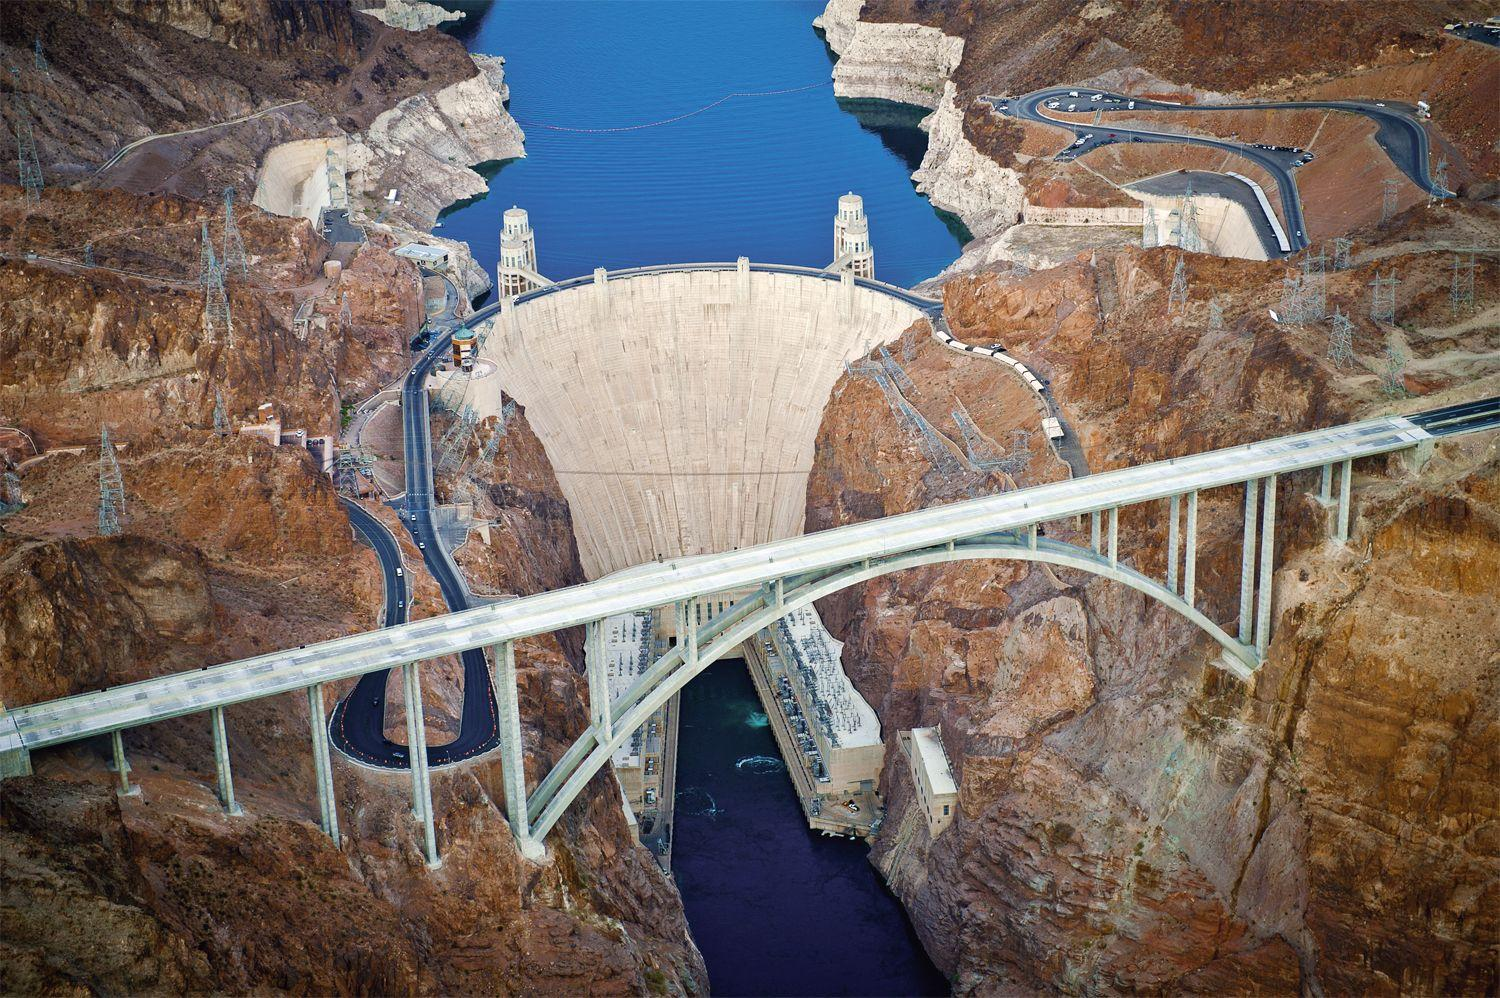 1389x454px Hoover Dam 546.45 KB